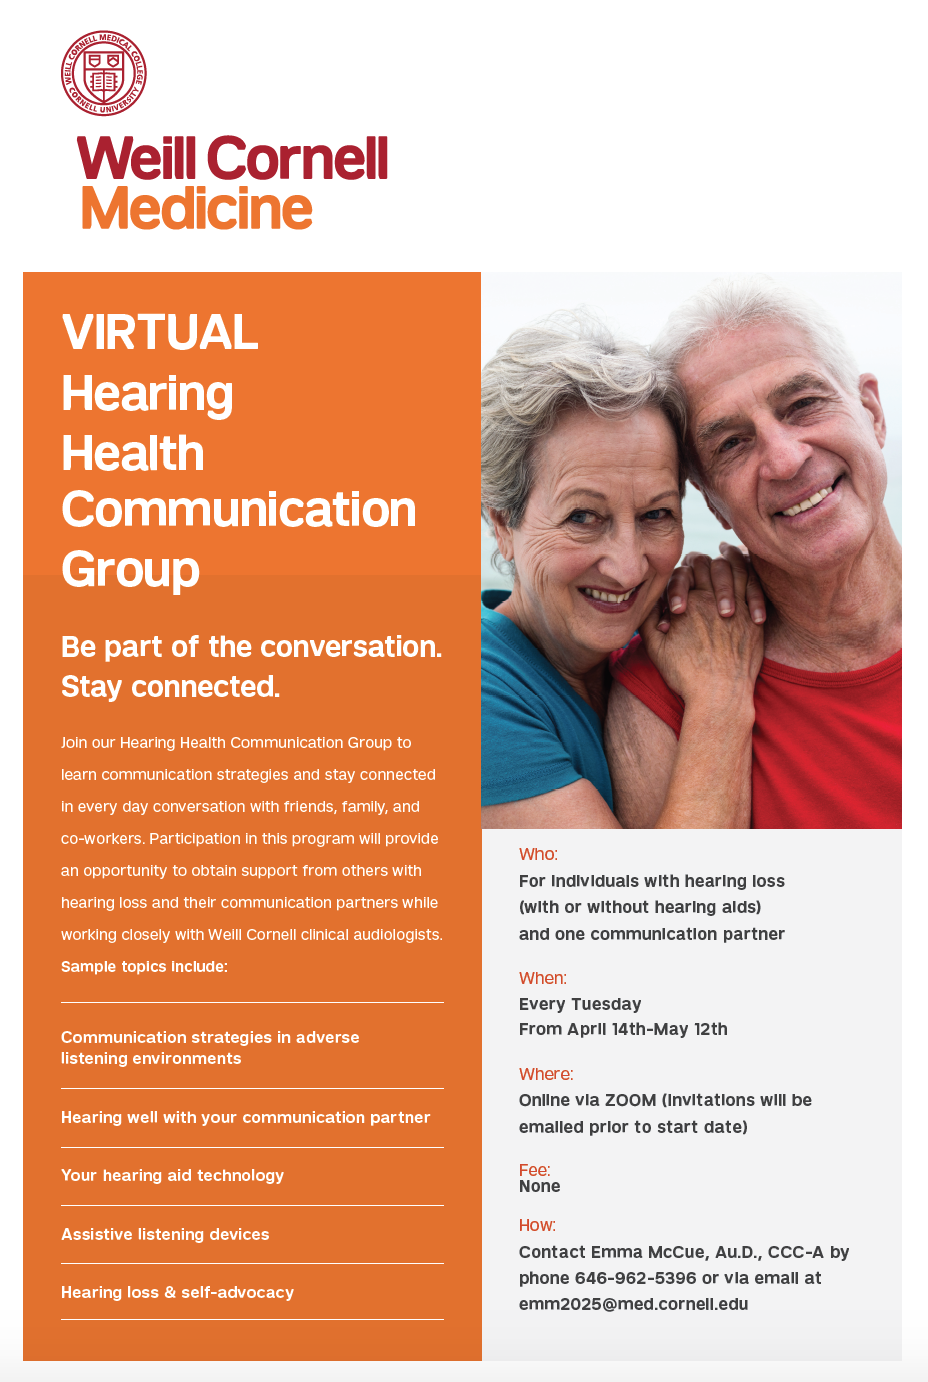 VIRTUAL Hearing Health Communication Group